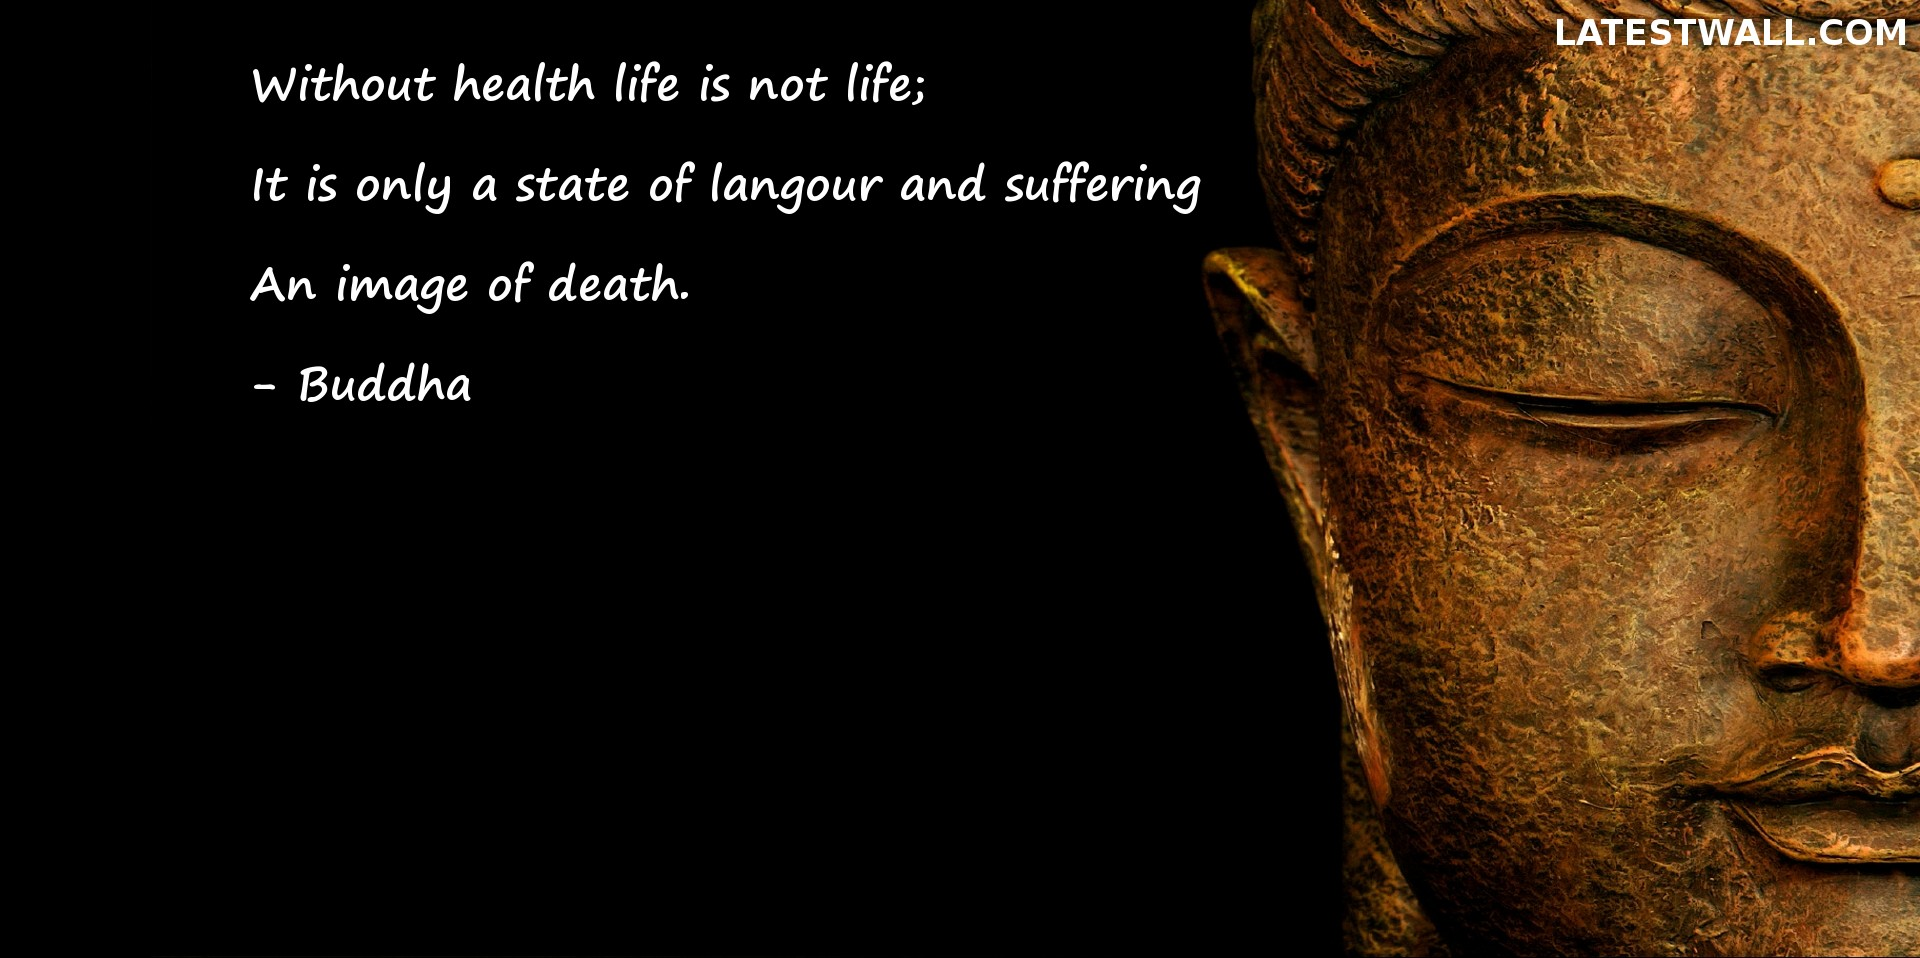 Without health life is not life